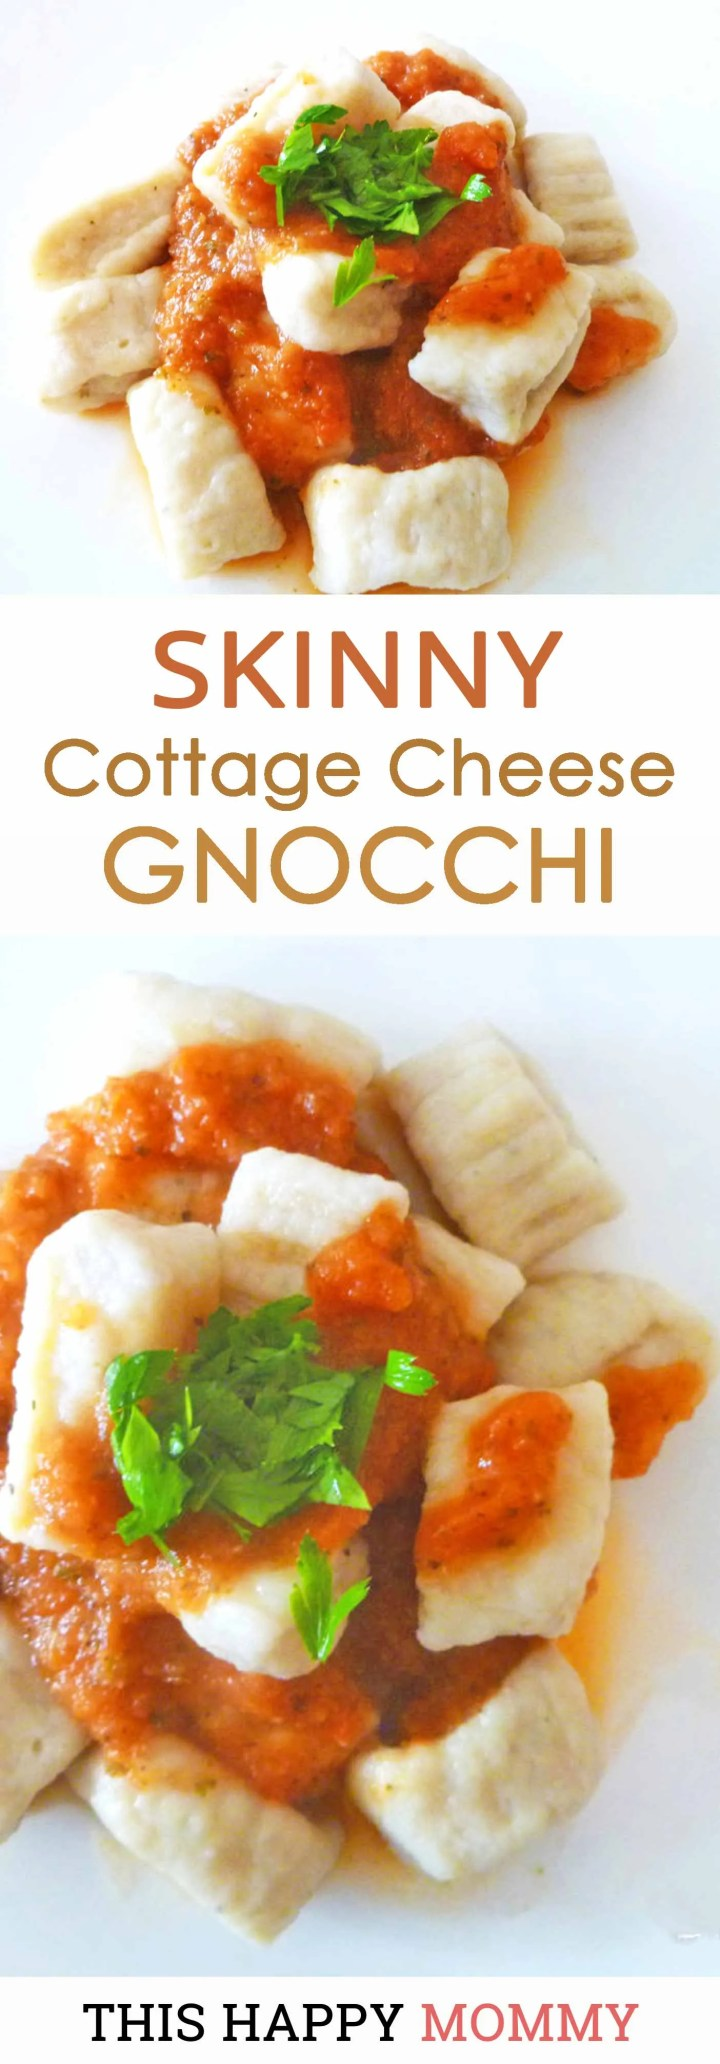 Your family will love this homemade, cheese-filled pasta. Skinny Cottage Cheese Gnocchi is a soft, fresh pasta that has a light and deliciously cheesy flavour. Every bite will melt in your mouth. Yum!| Healthy and Easy Pasta Recipe | Fresh Pasta Recipe | Homemade Pasta | Low Fat Pasta | Meatless Monday | Vegetarian Pasta | Healthy Gnocchi | #recipe #pasta #meatlessmonday #vegetarian #healthypasta | thishappymommy.com